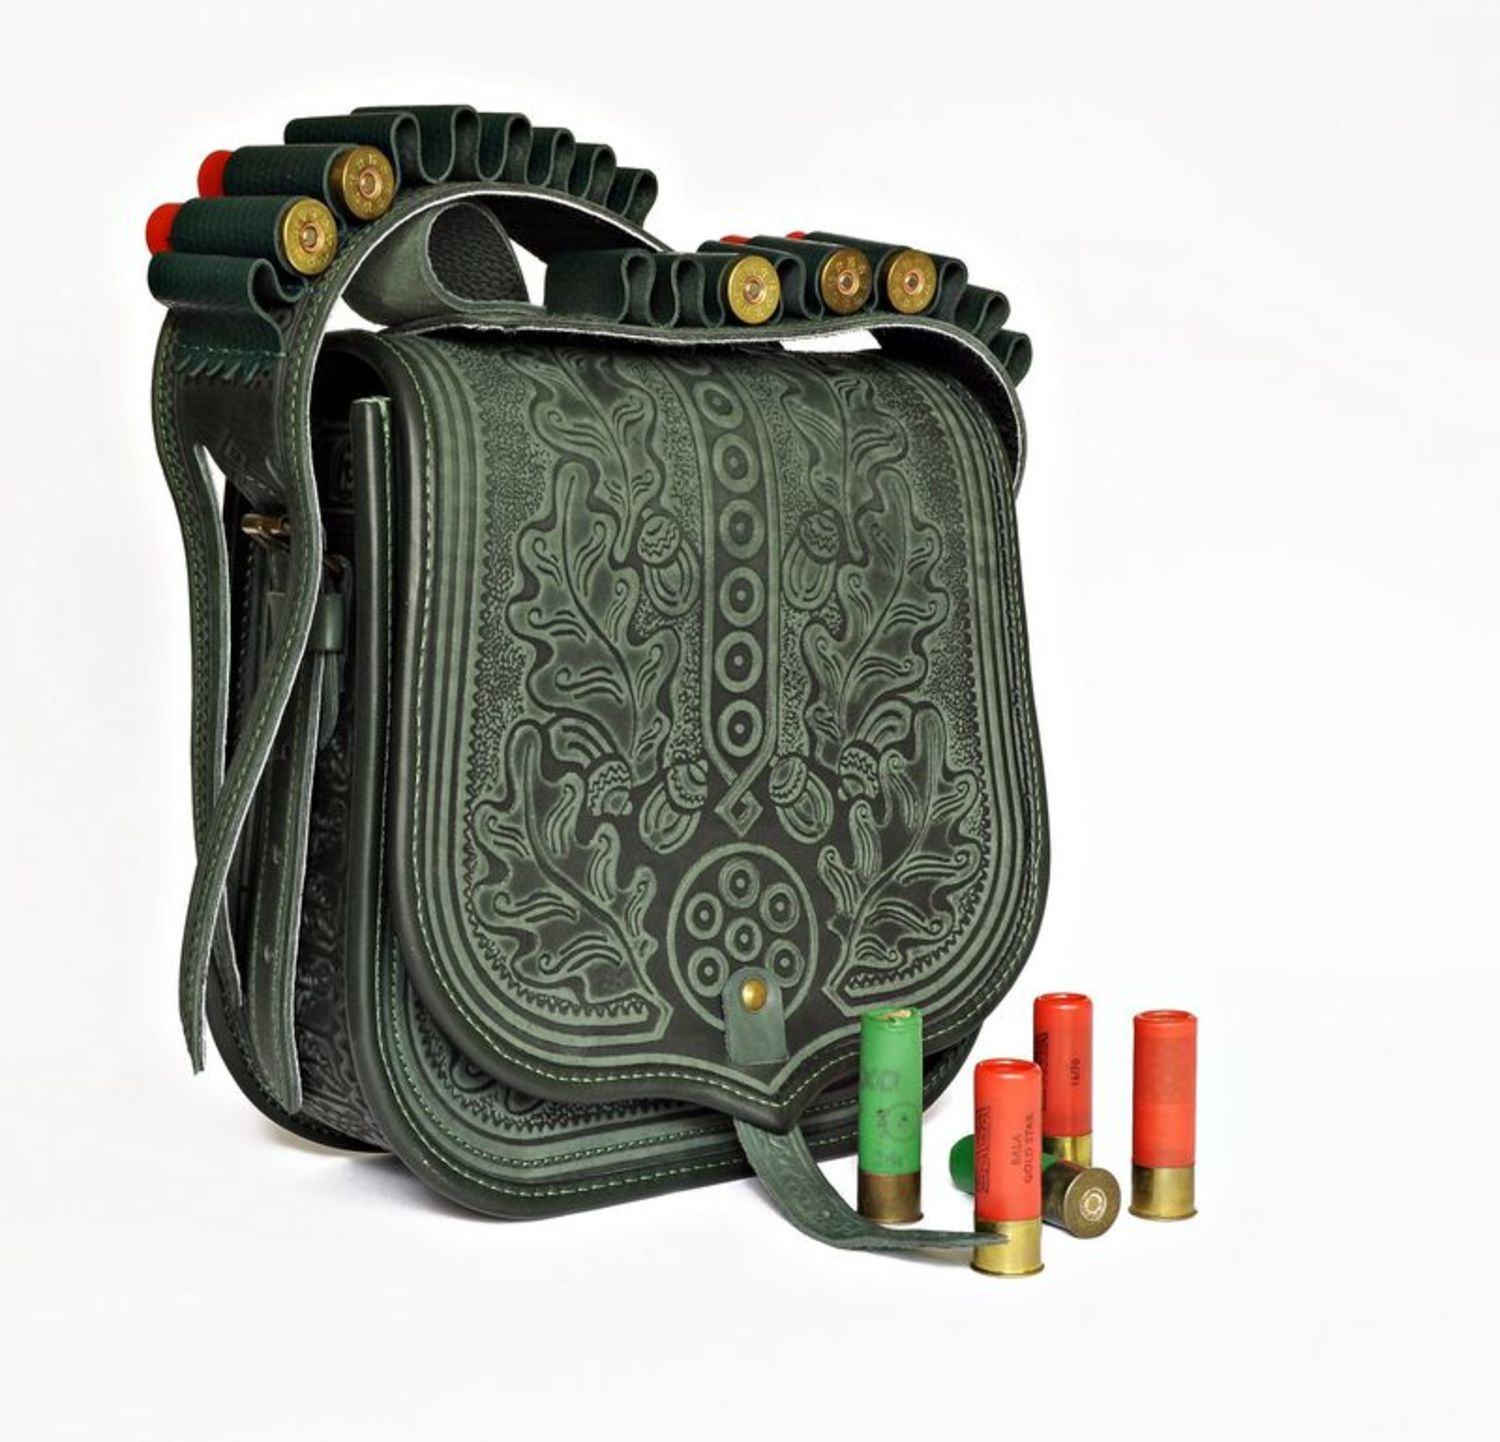 Men's Bags Hunting bag with cartridge - MADEheart.com